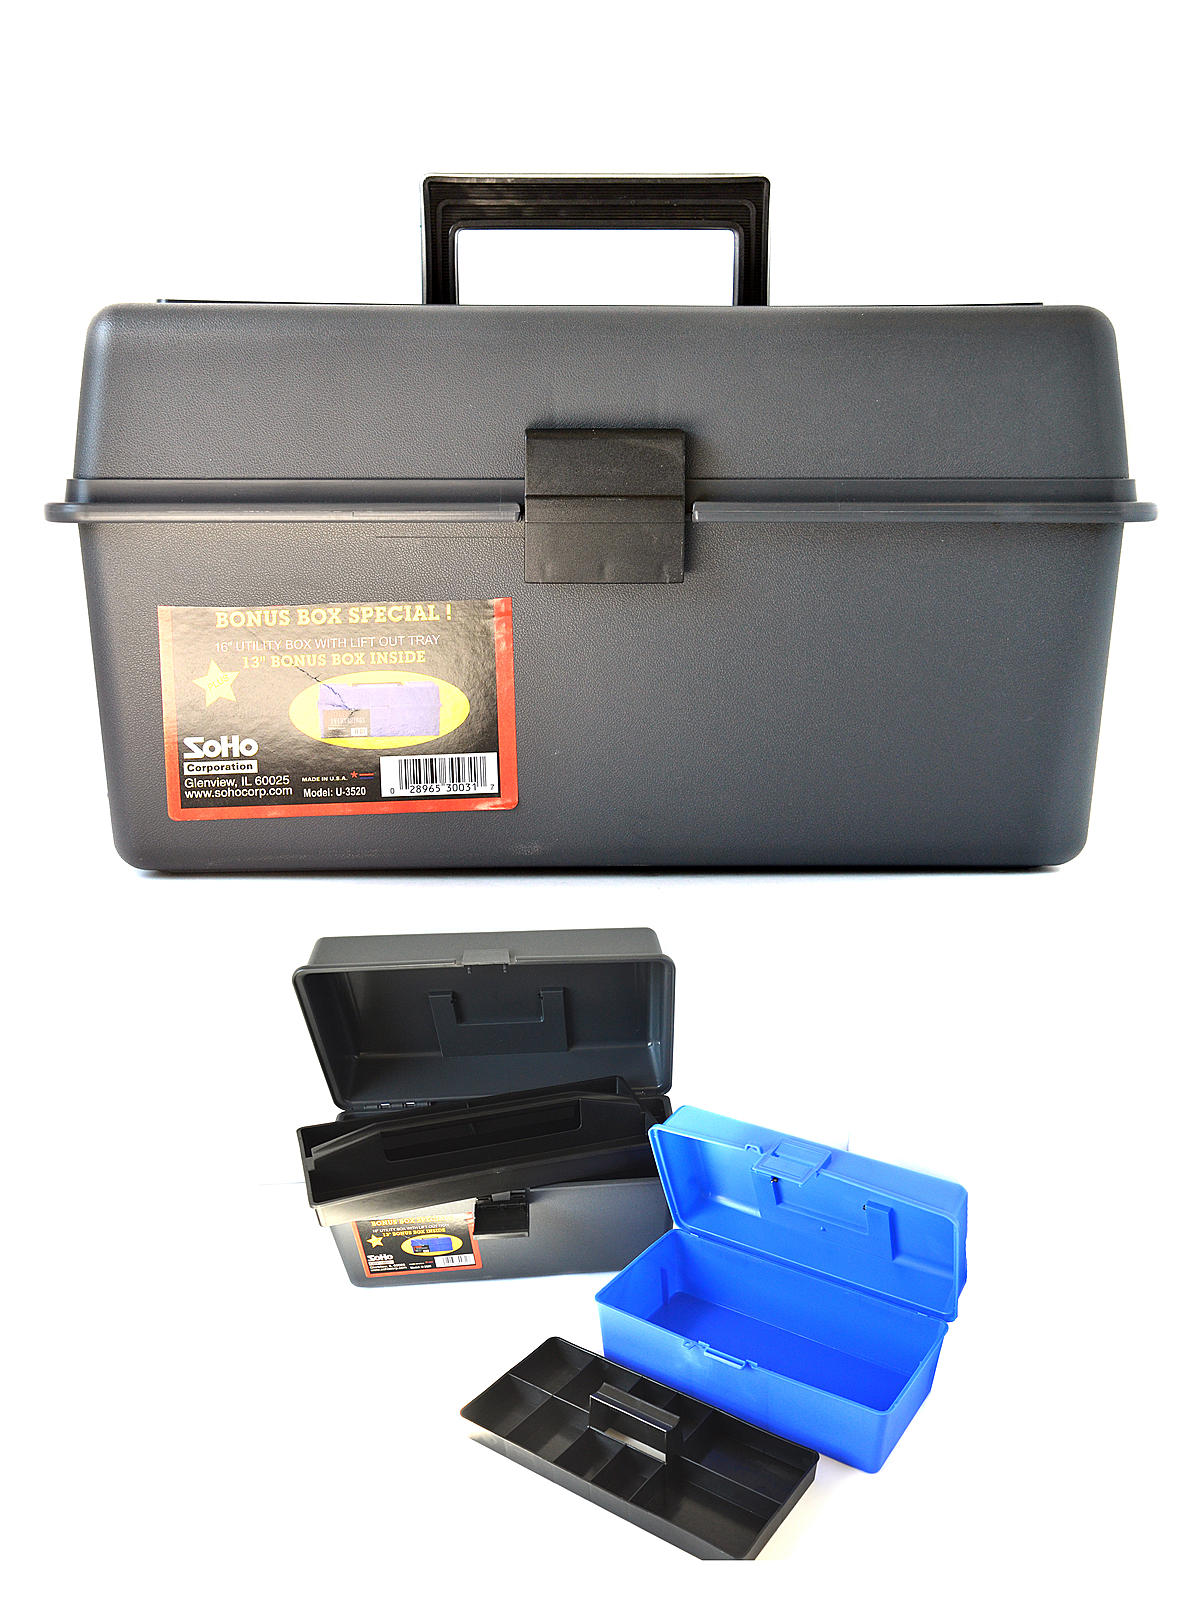 16 In. Utility Box with Lift-Out Tray